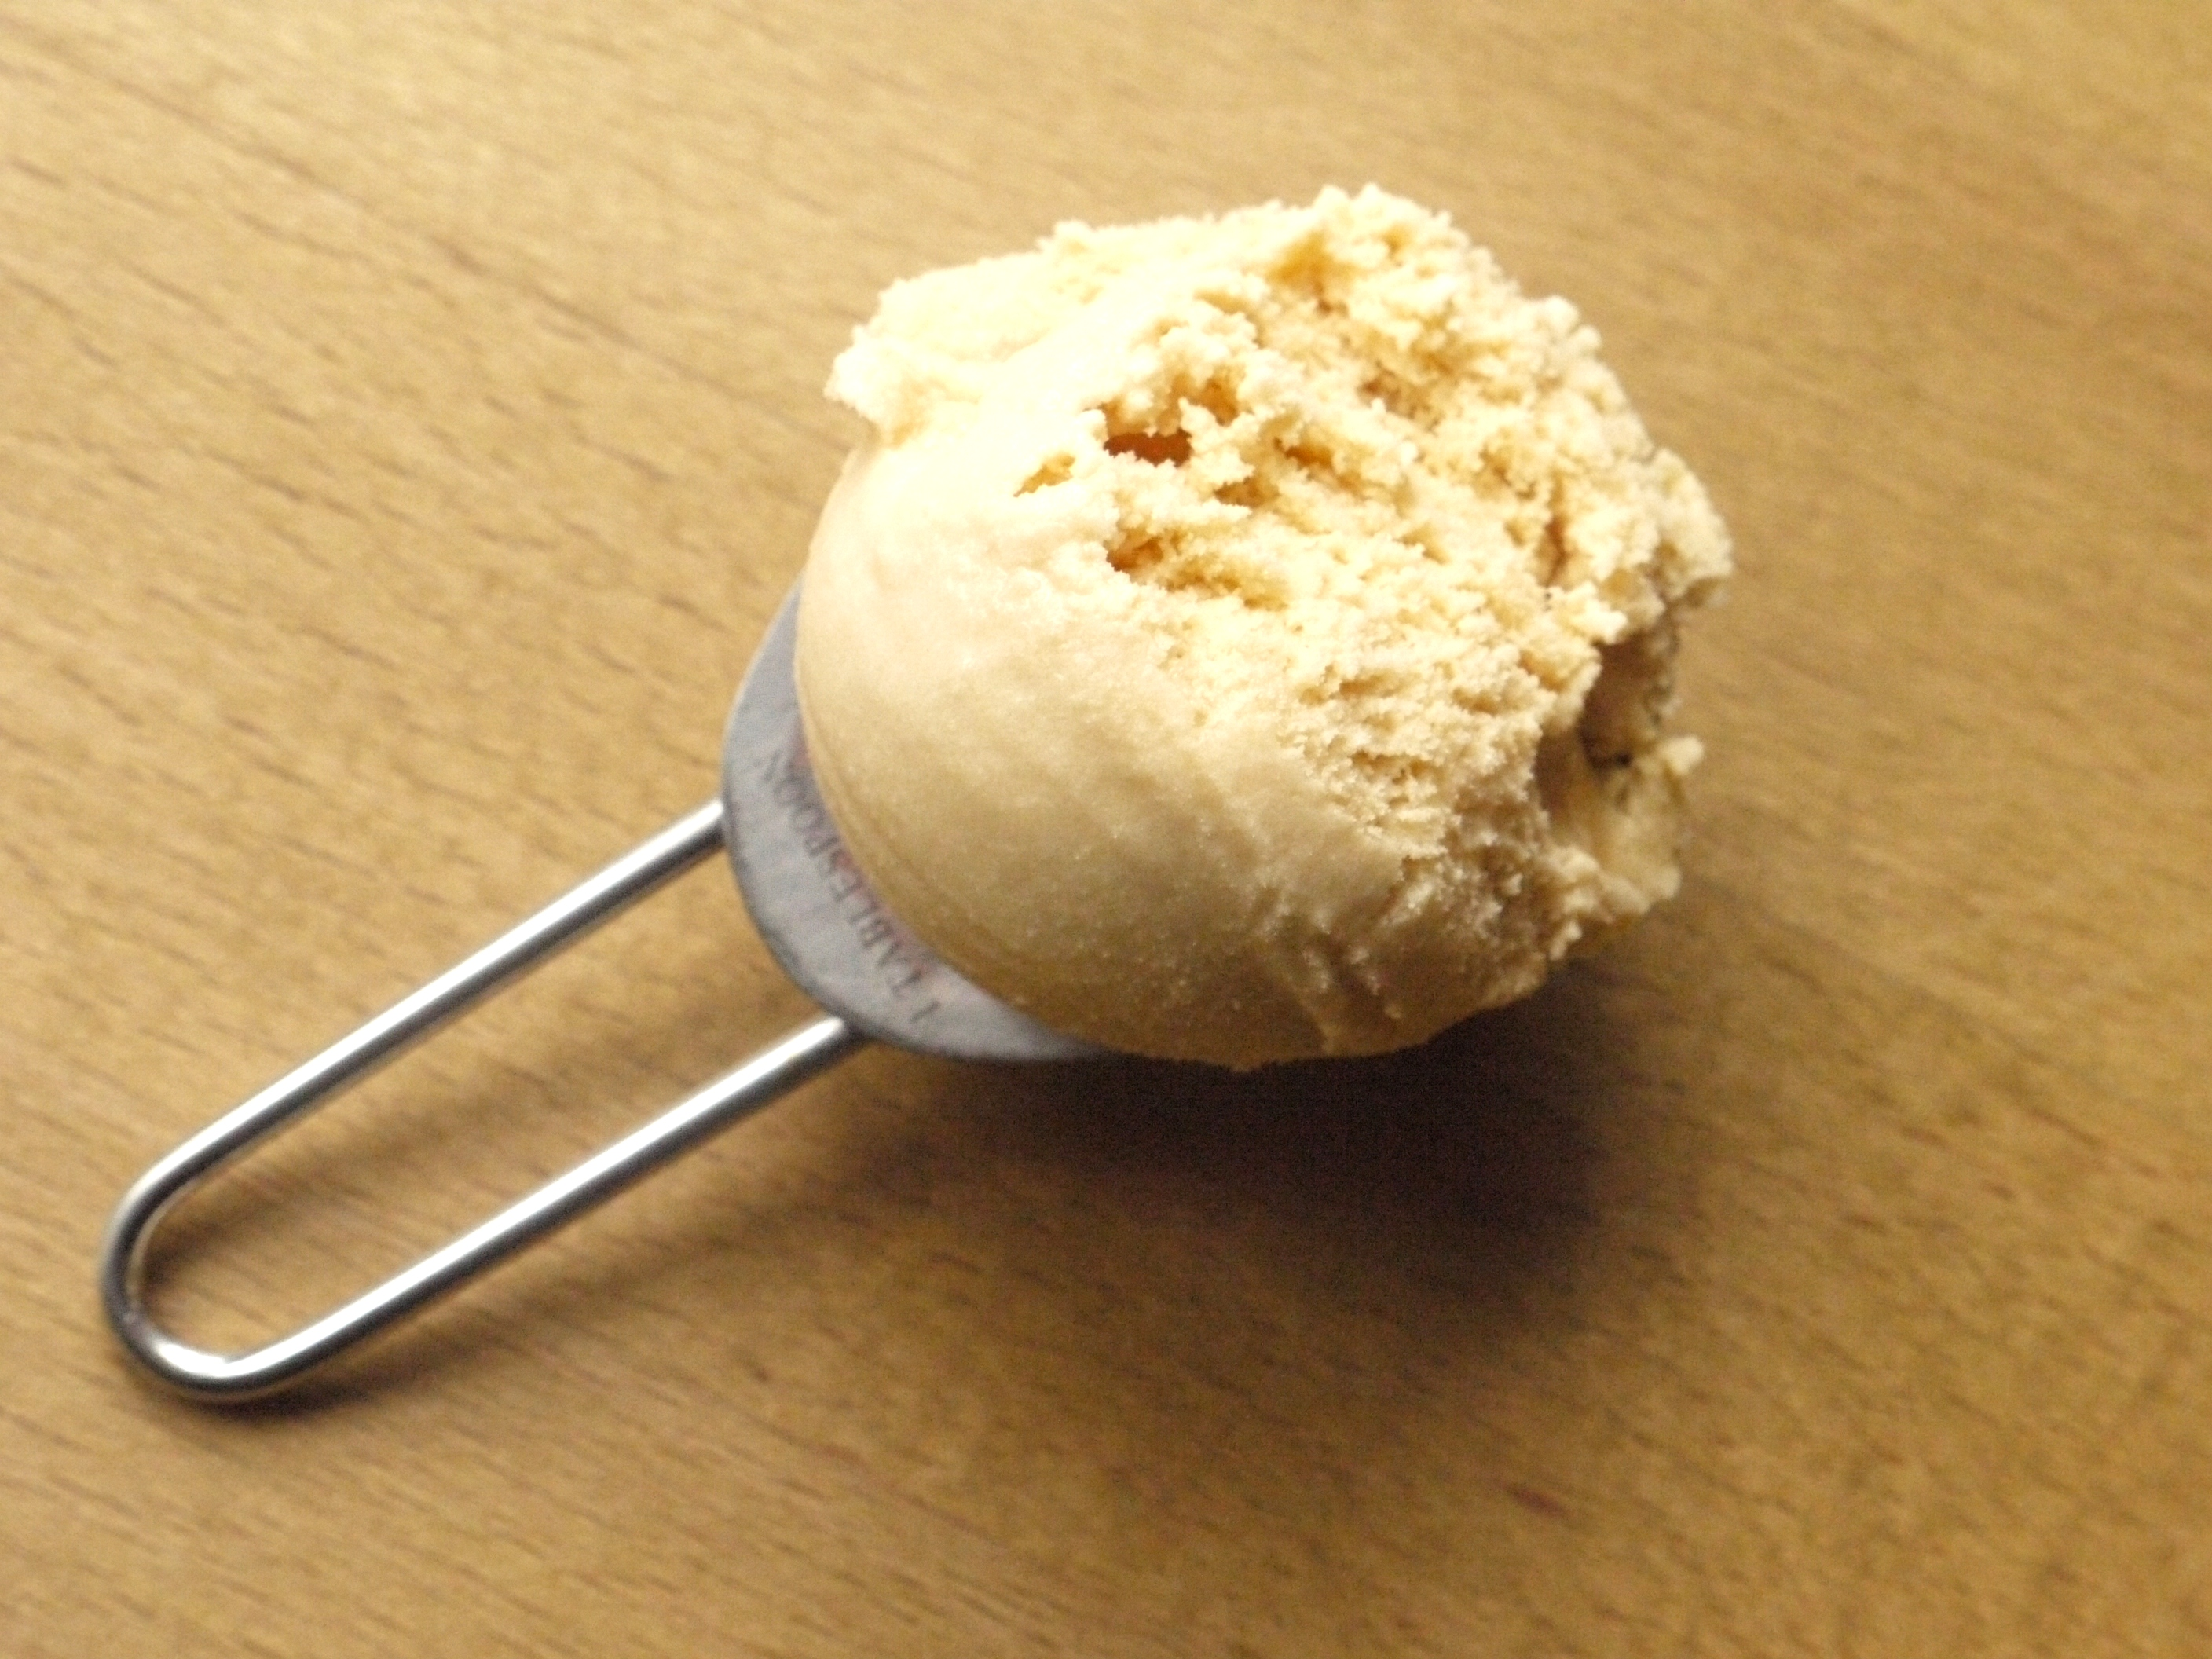 Creamy, dreamy caramel-like dulce de leche ice cream